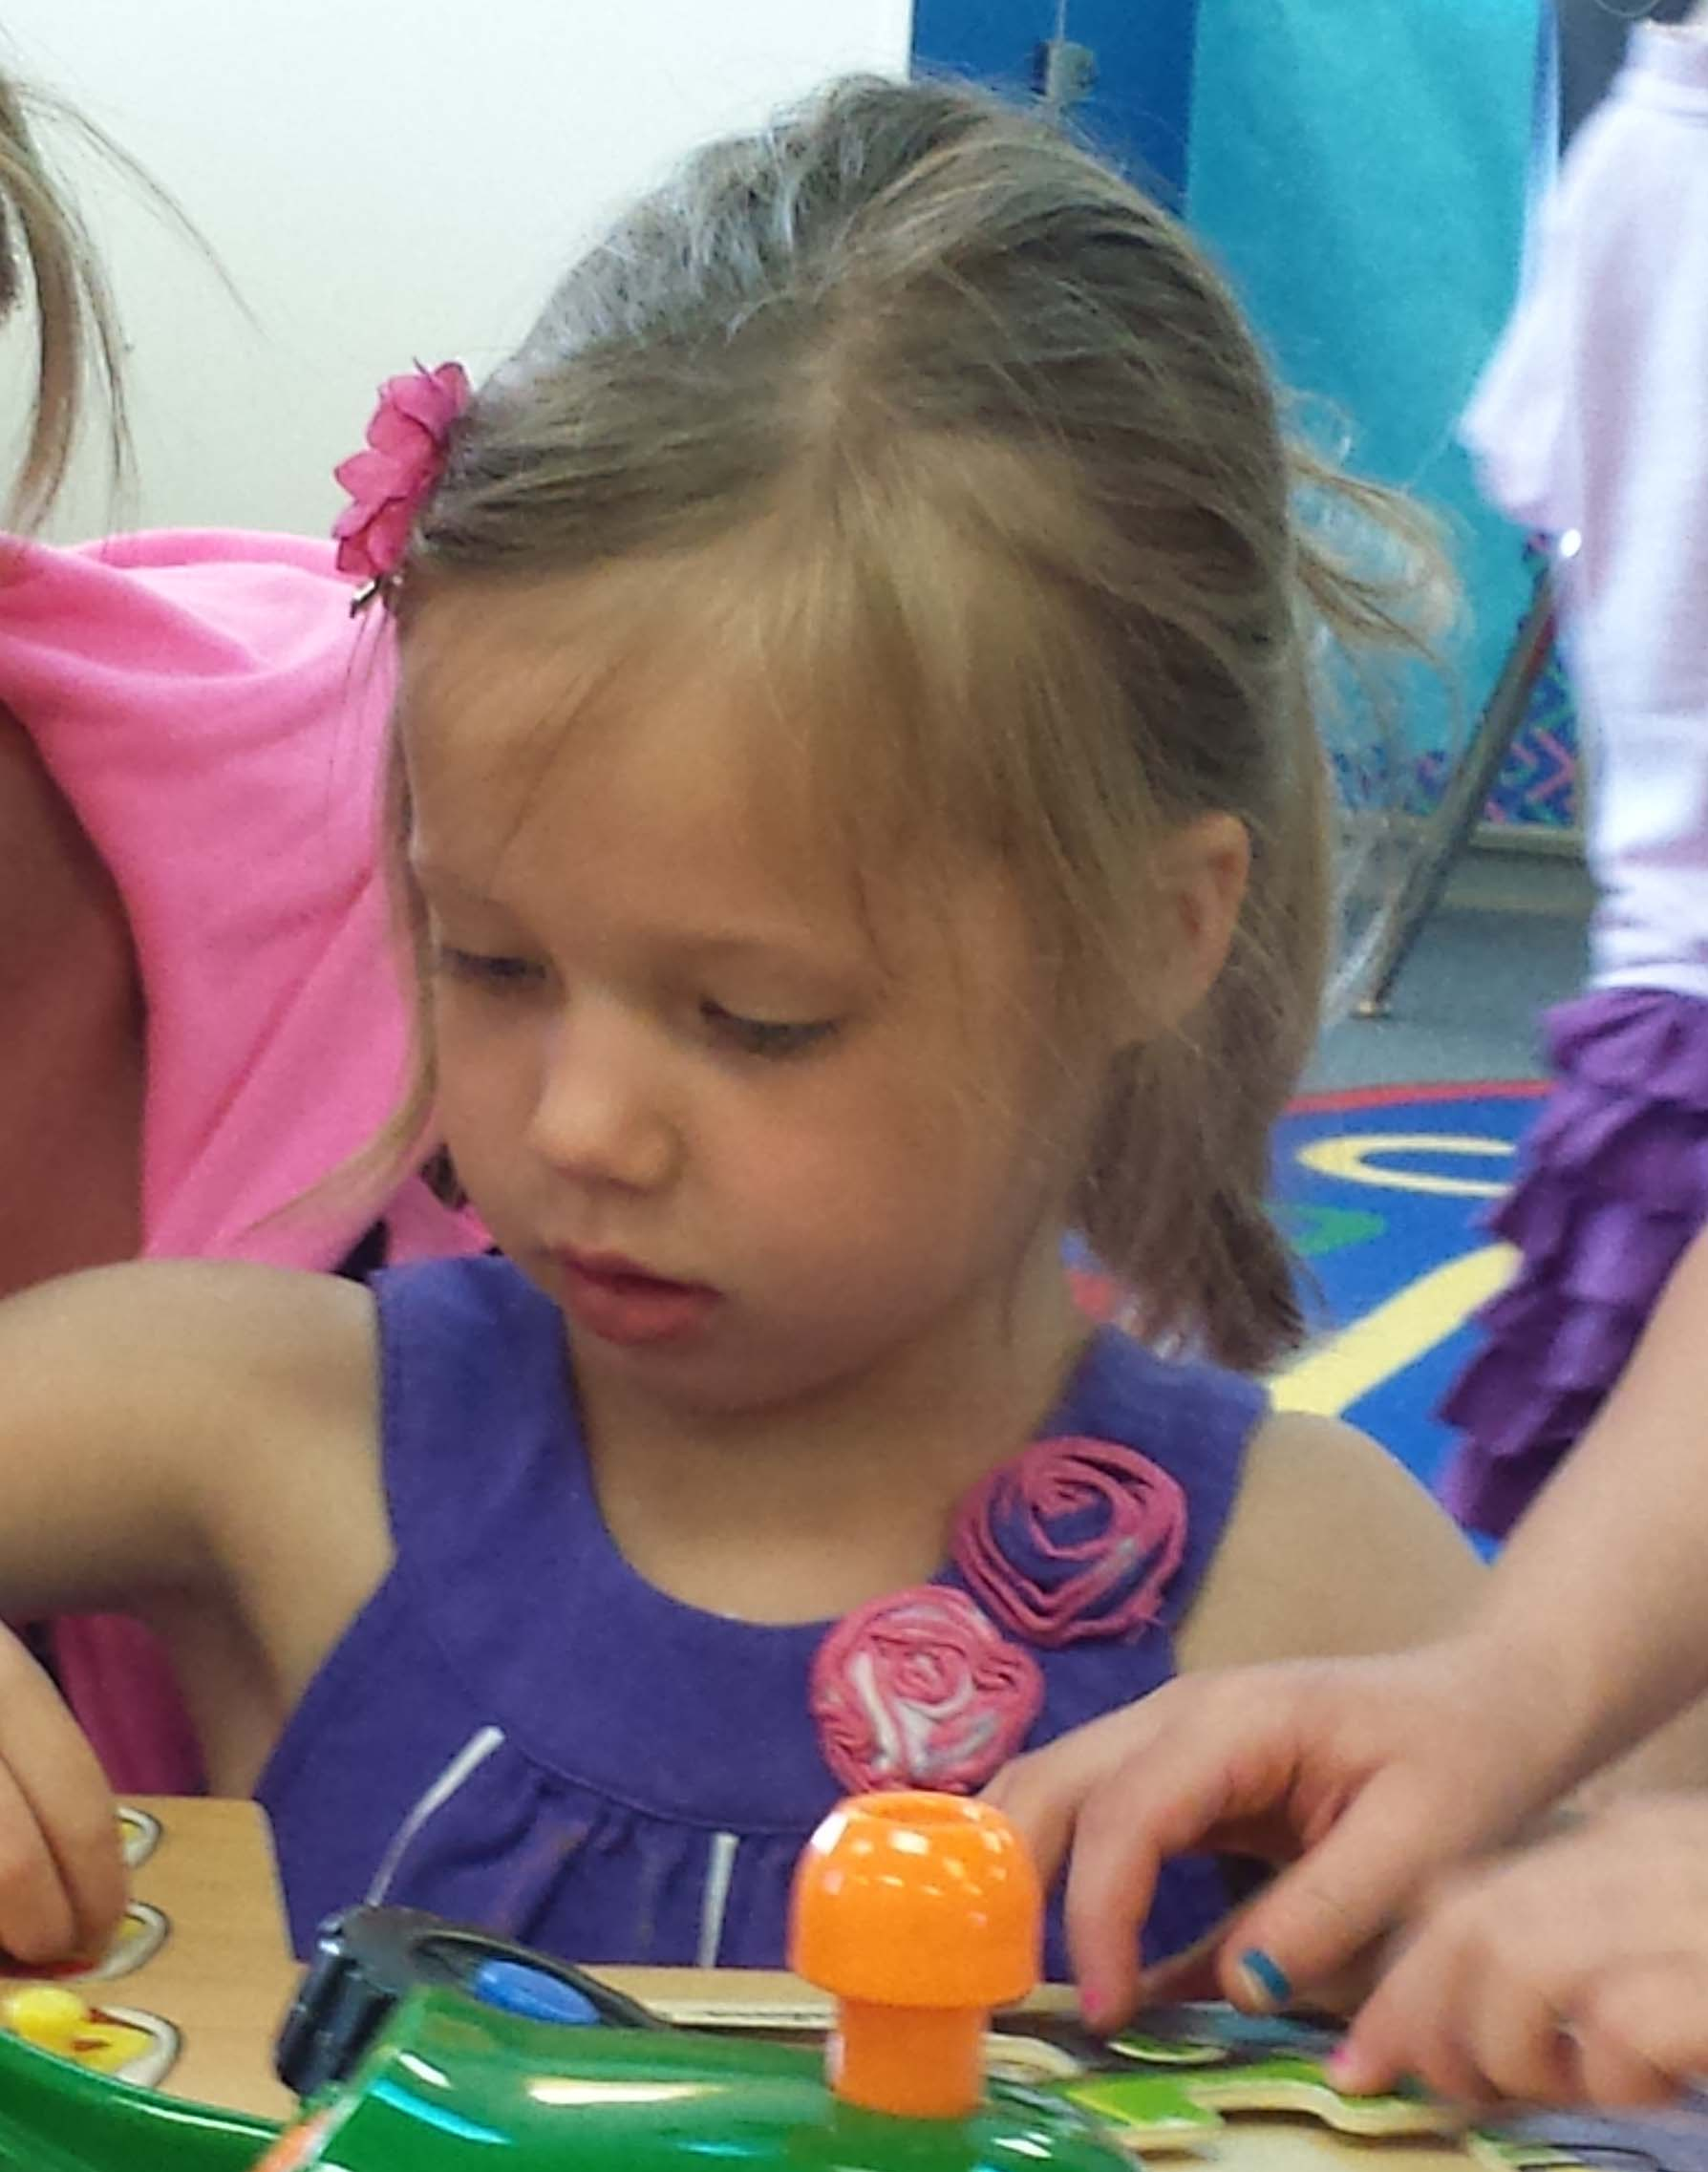 Taylor Gunderson, 4, works on a puzzle in a play group at Cedar Trails Elementary School